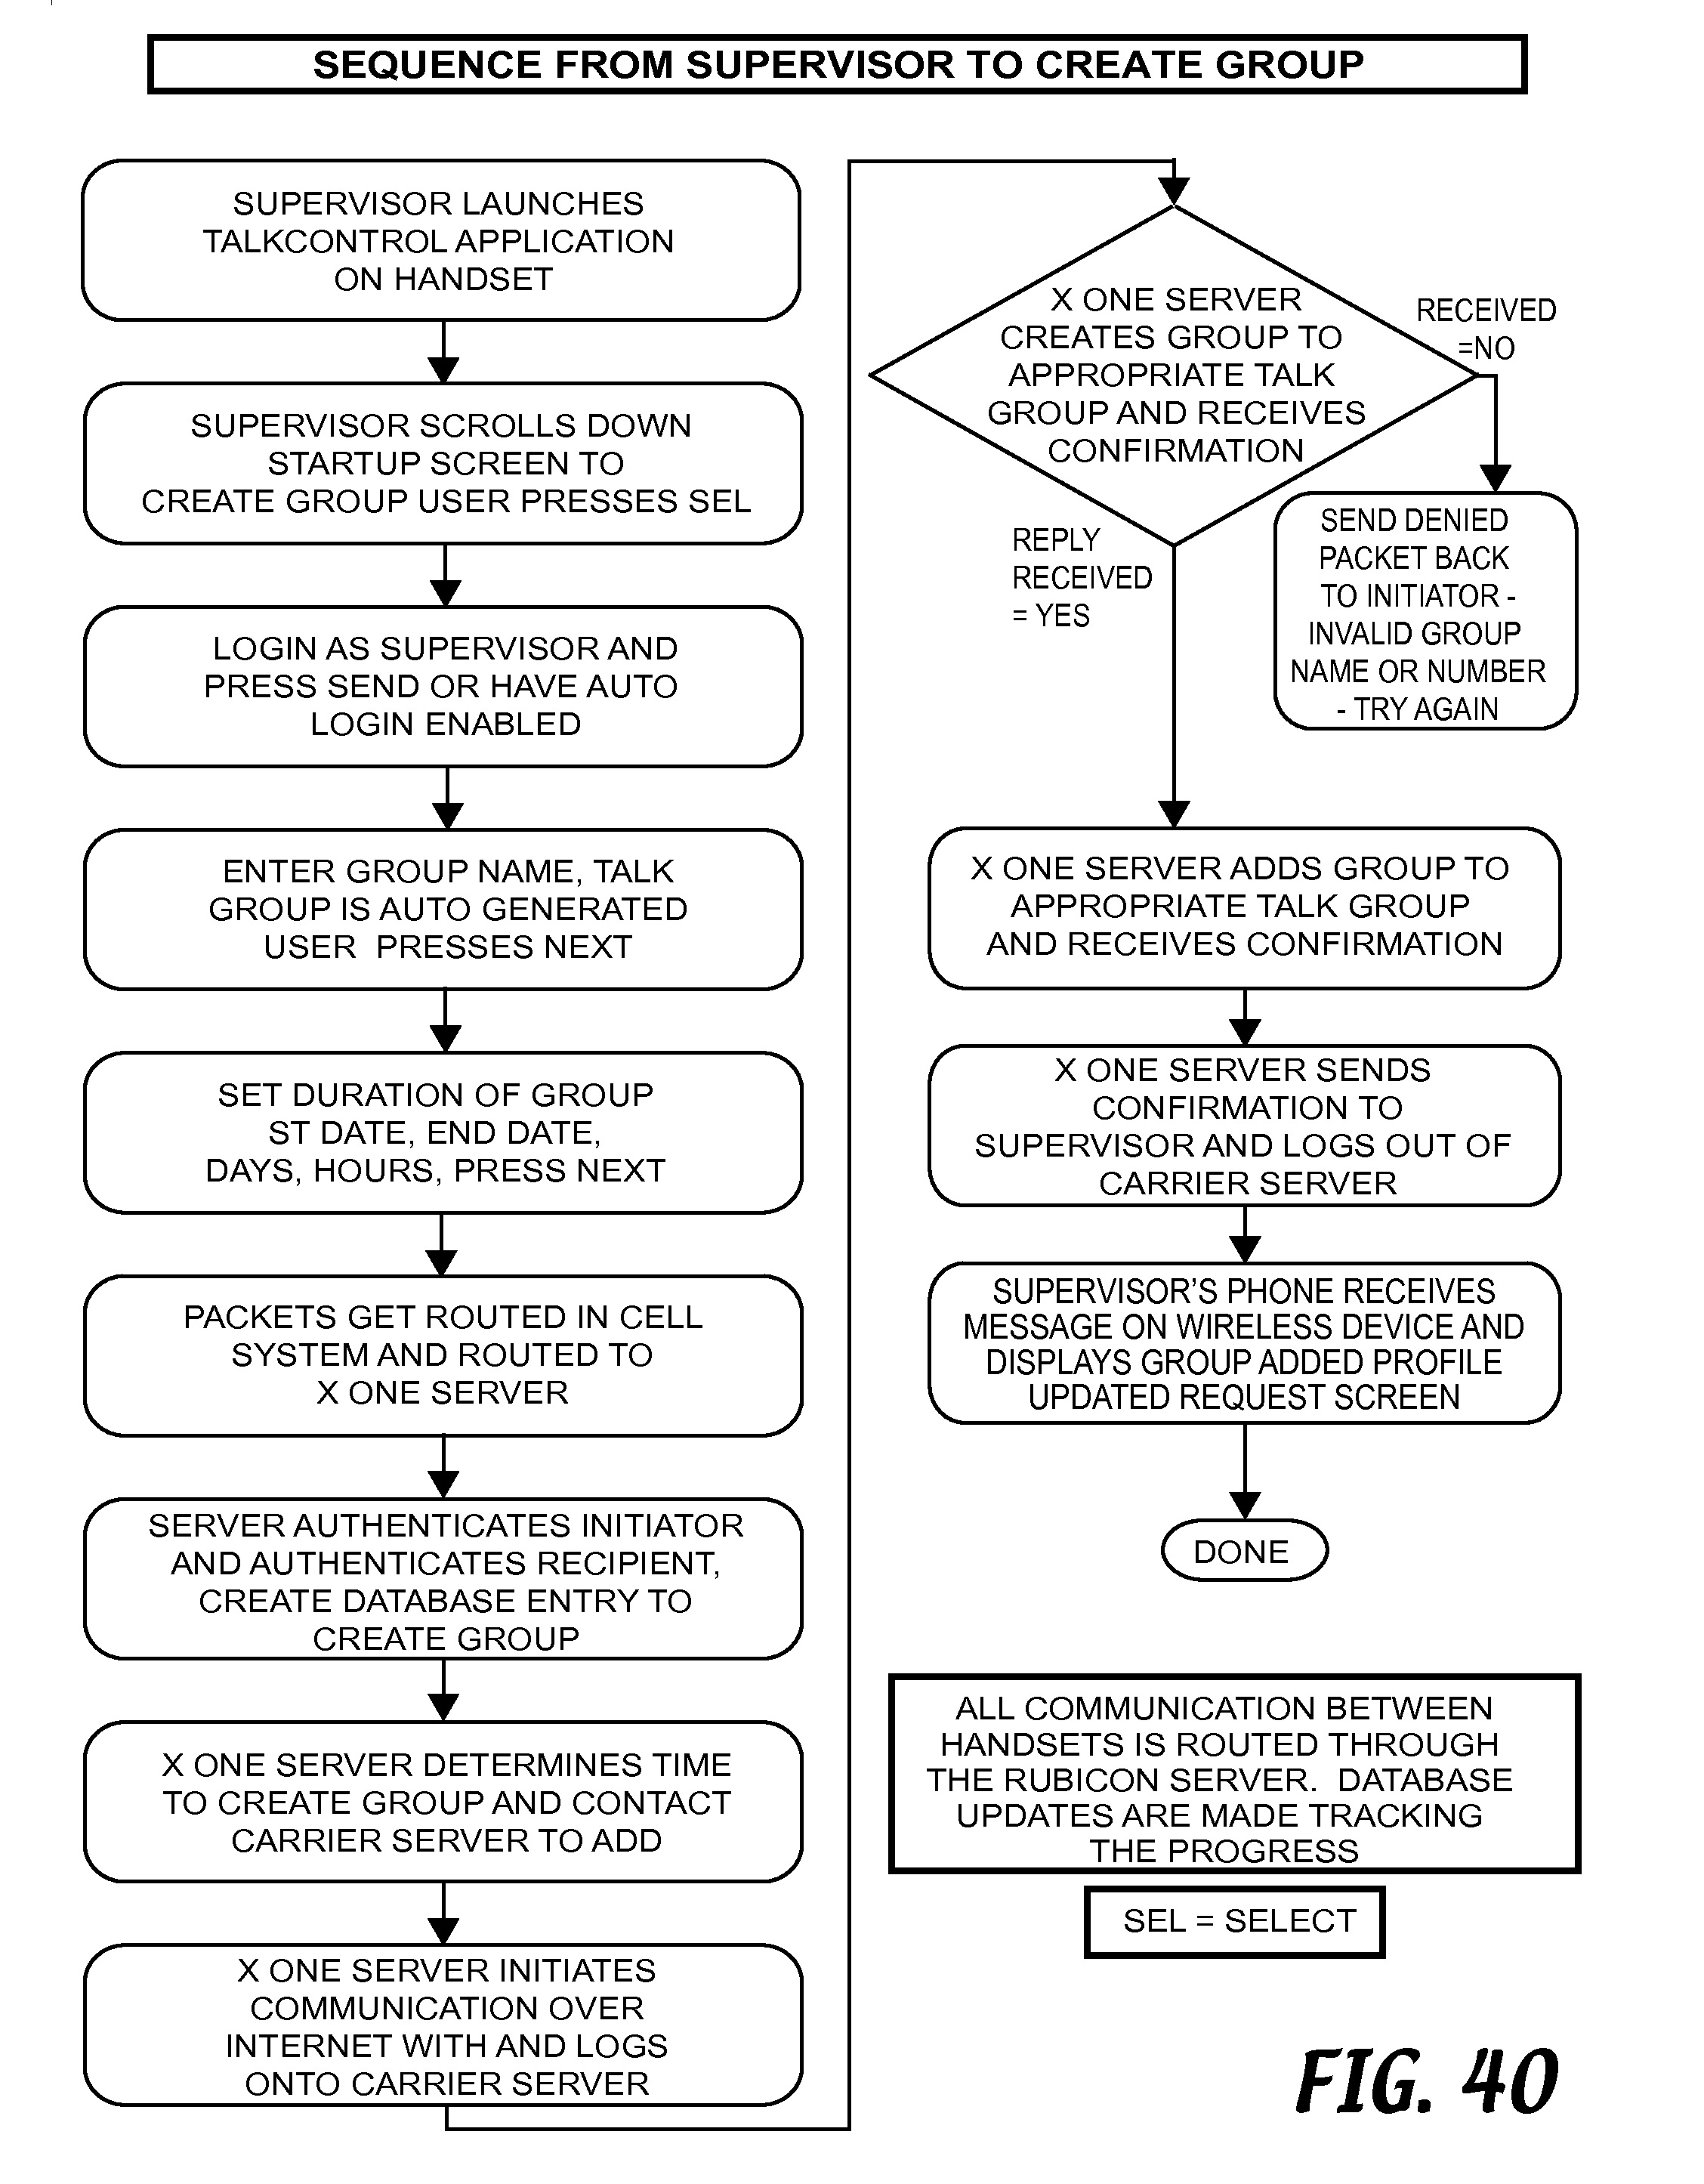 Us20140295895a1 Methods And Systems For Sharing Position Data Network Diagram Internetbased Servers Scenario 4 With Internet Between Subscribers Involving Multiple Wireless Providers Google Patents